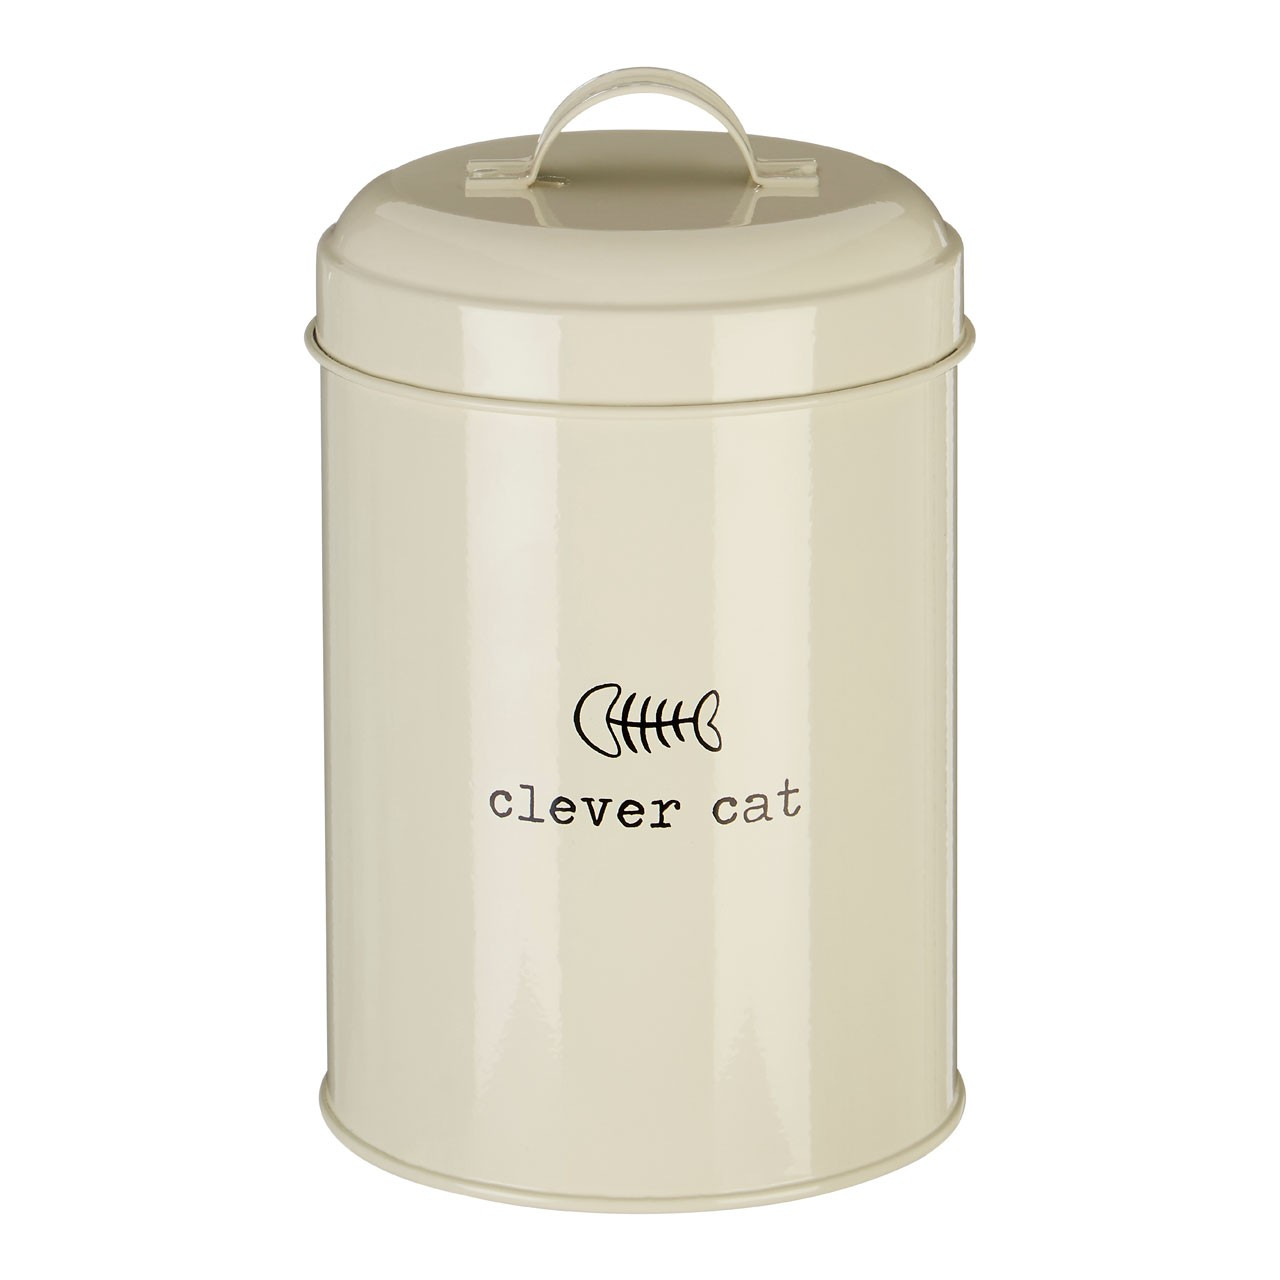 1.2 Litre Adore Pets 'clever cat' food storage canister